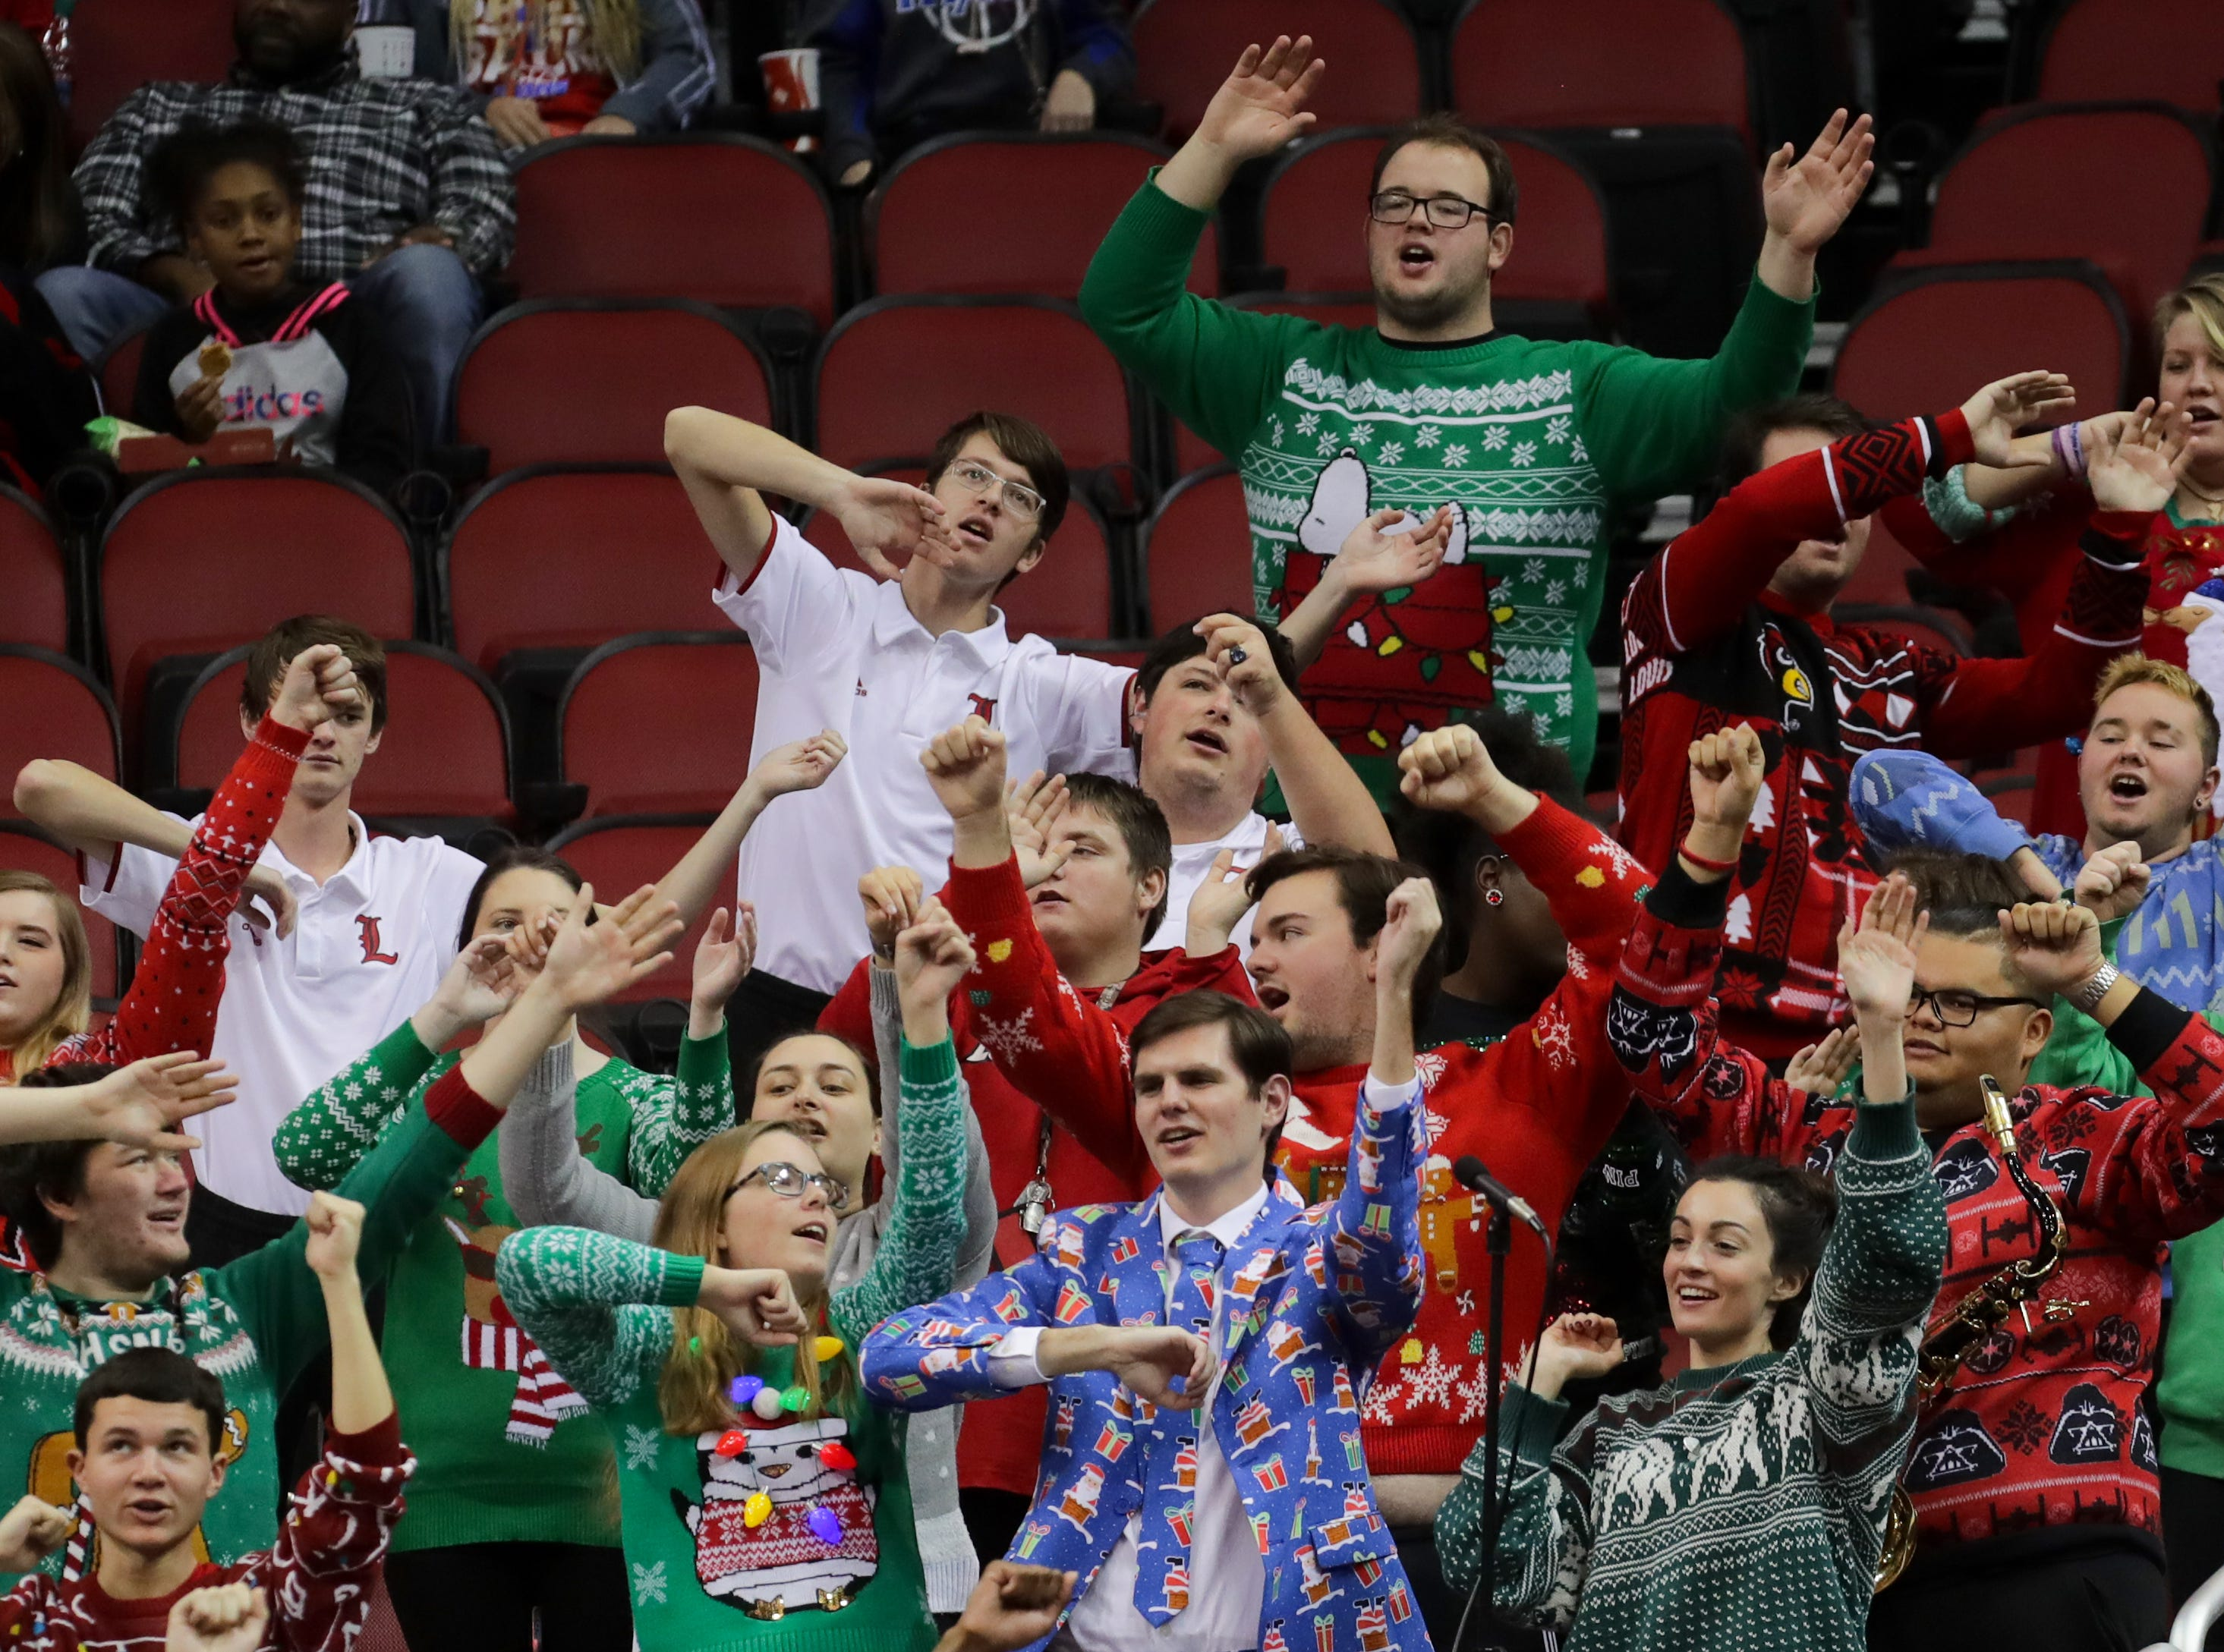 Many of the fans, including the pep band, at the Louisville vs UT Martin joined in on the Ugly Christmas Sweater night.   